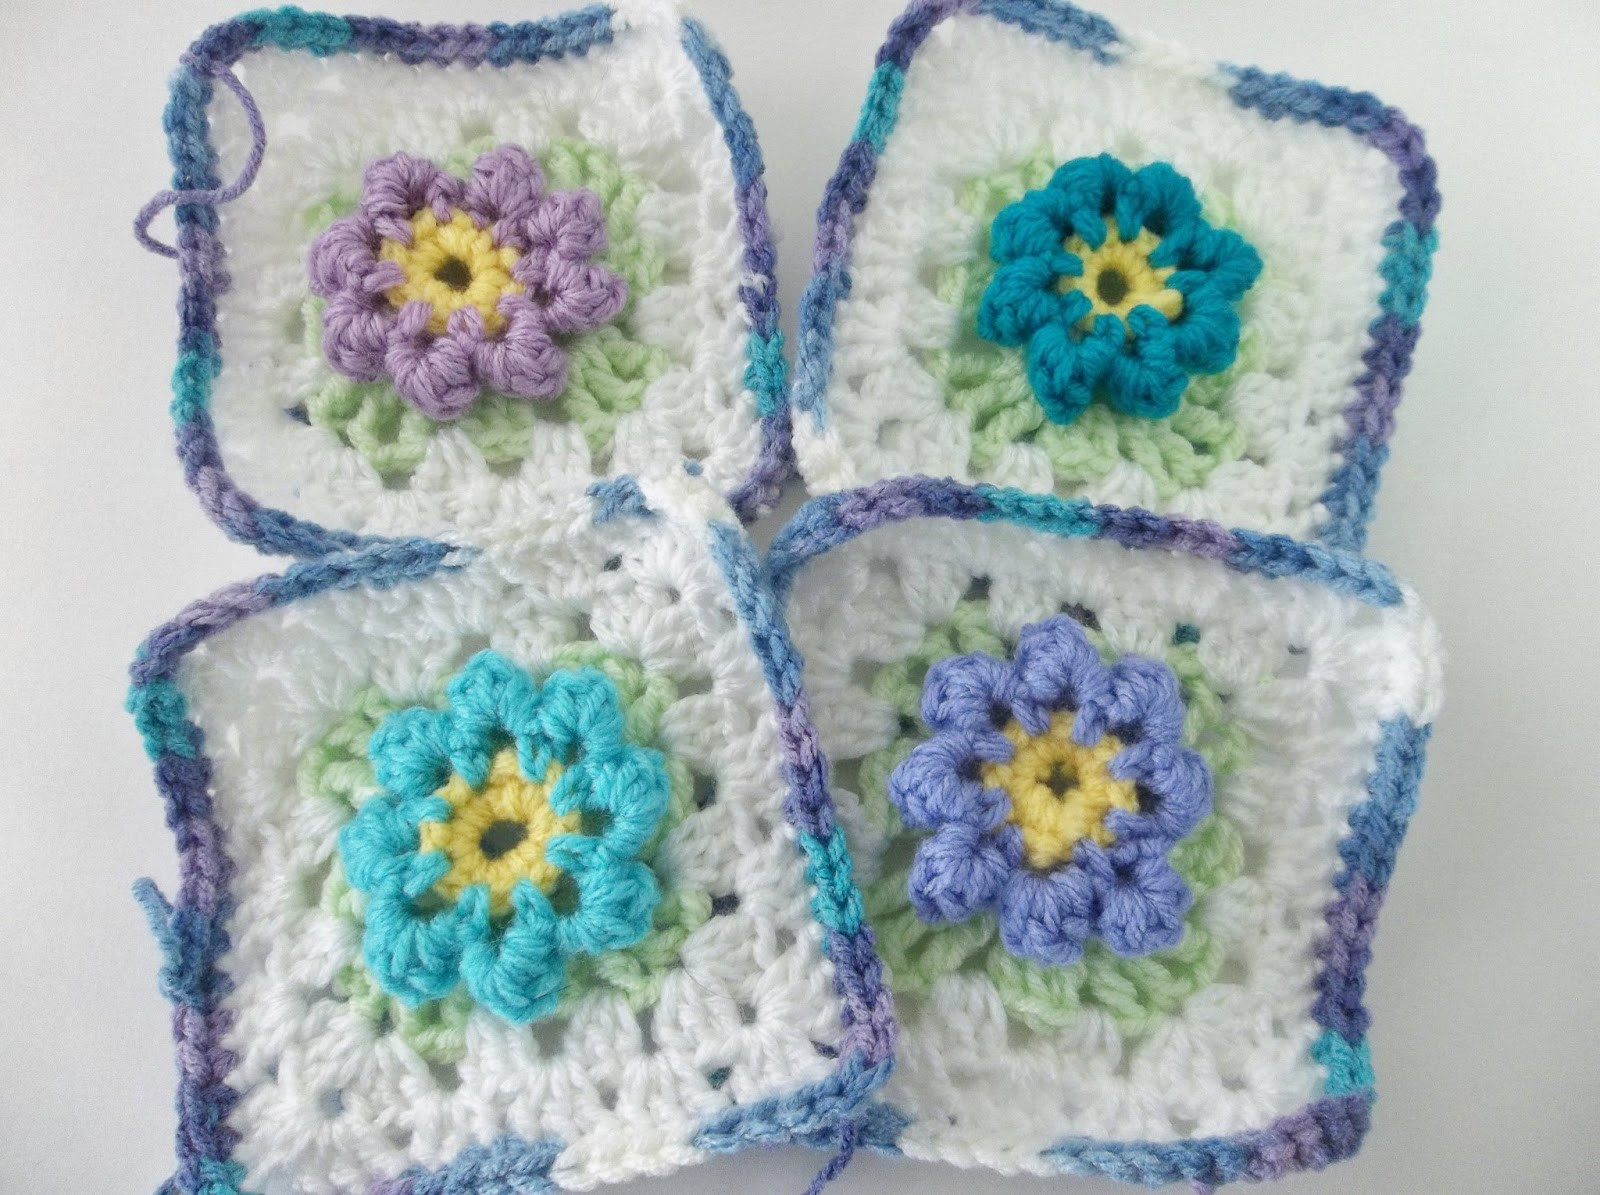 Granny Square Best Of Creating Beautiful Things In Life Easy Granny Square with Of Gorgeous 45 Photos Granny Square